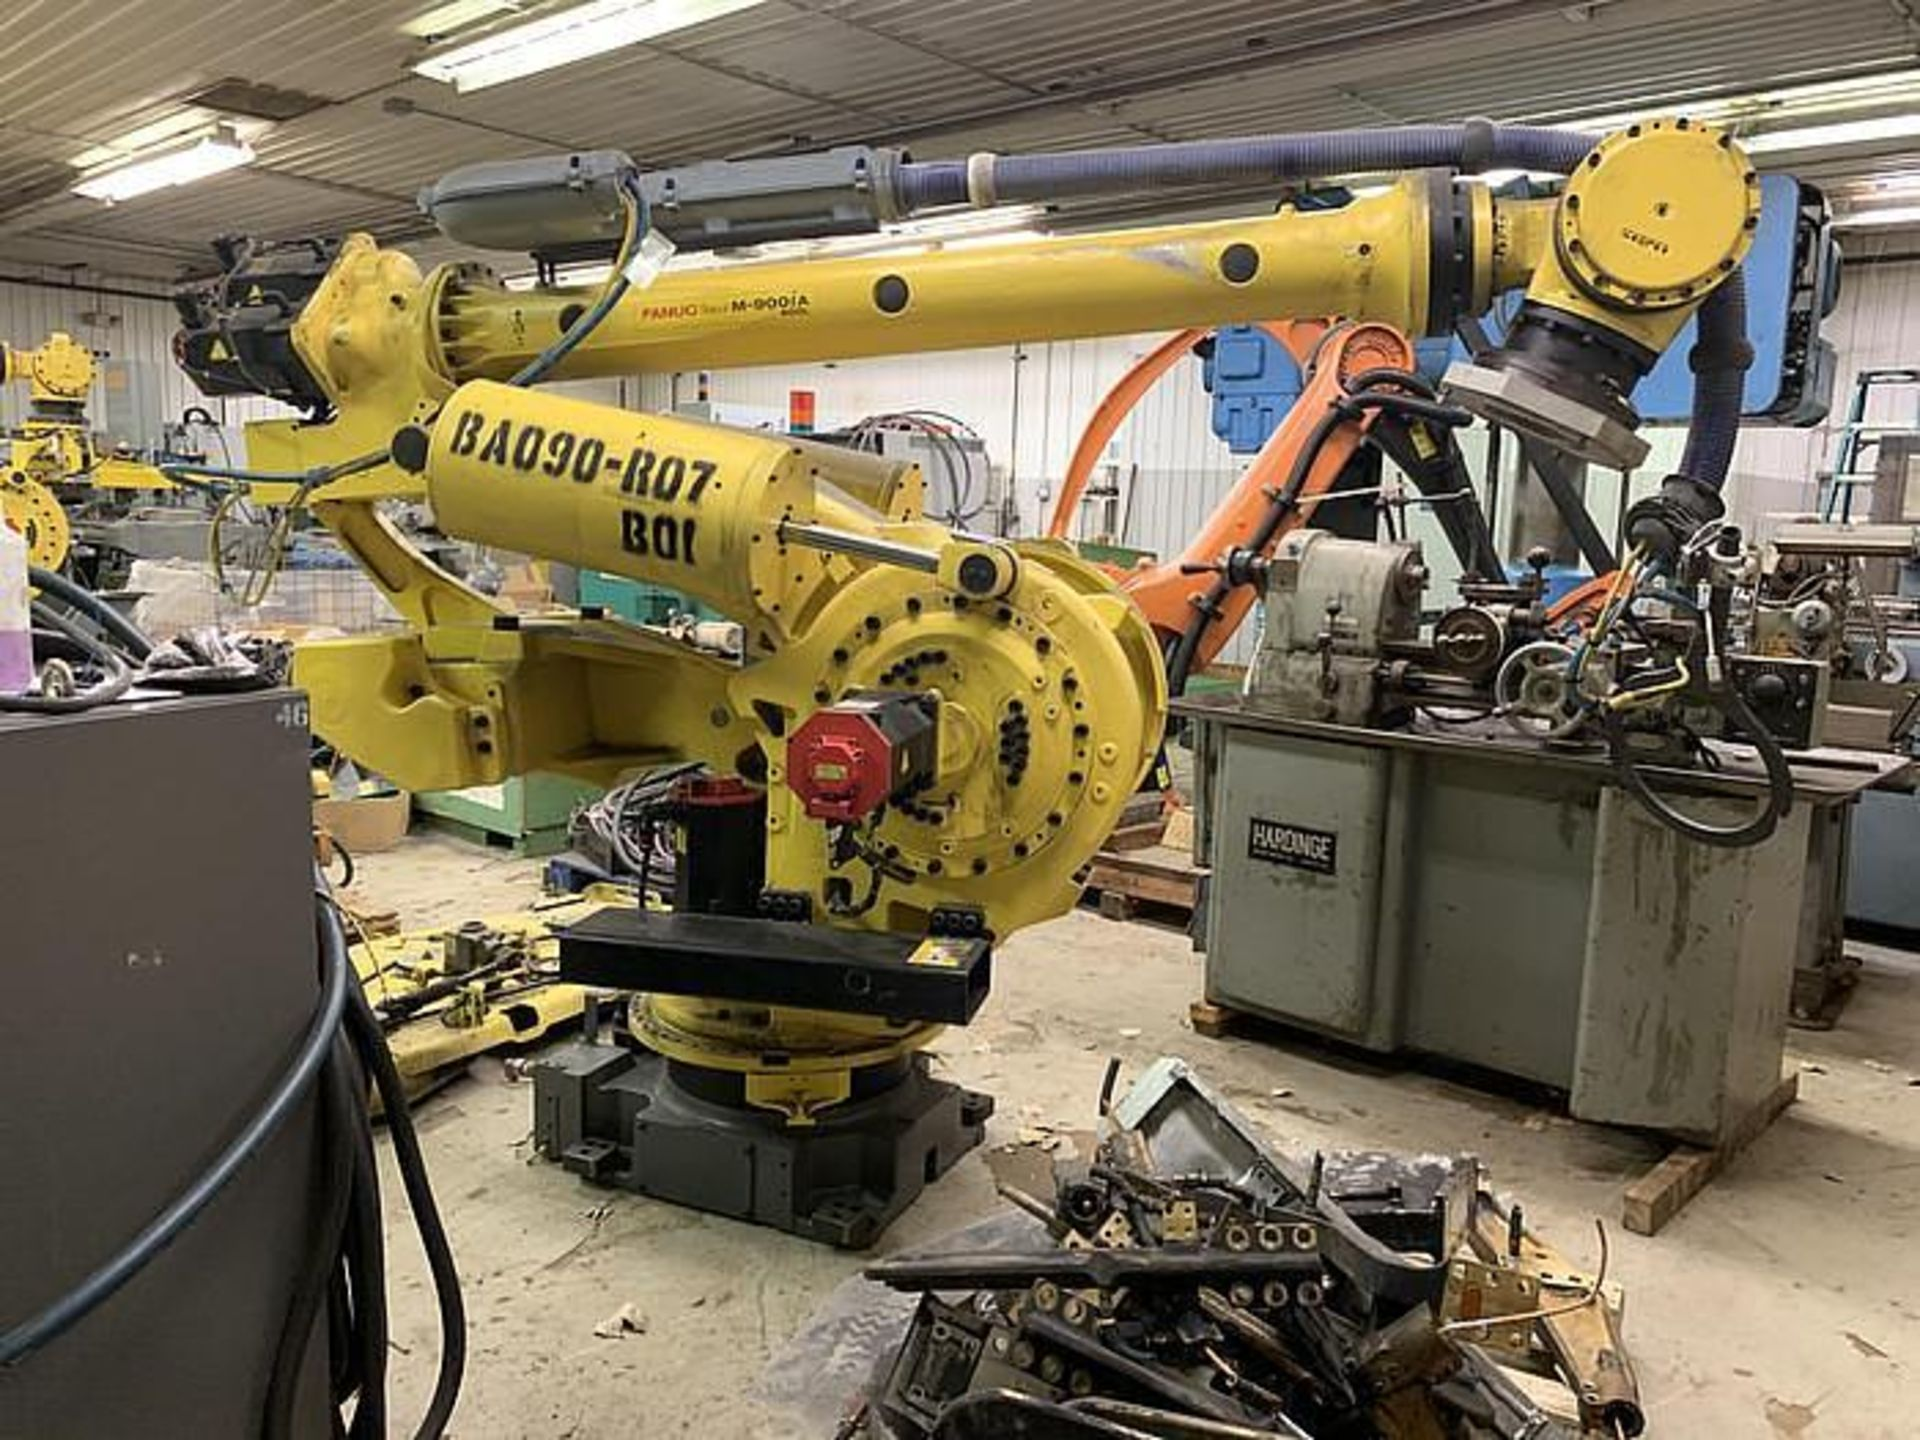 FANUC M900iA/400L 6 AXIS CNC ROBOT WITH R30iA CONTROLLER, CABLES & TEACH, SN F113428, YEAR 2011 - Image 4 of 6